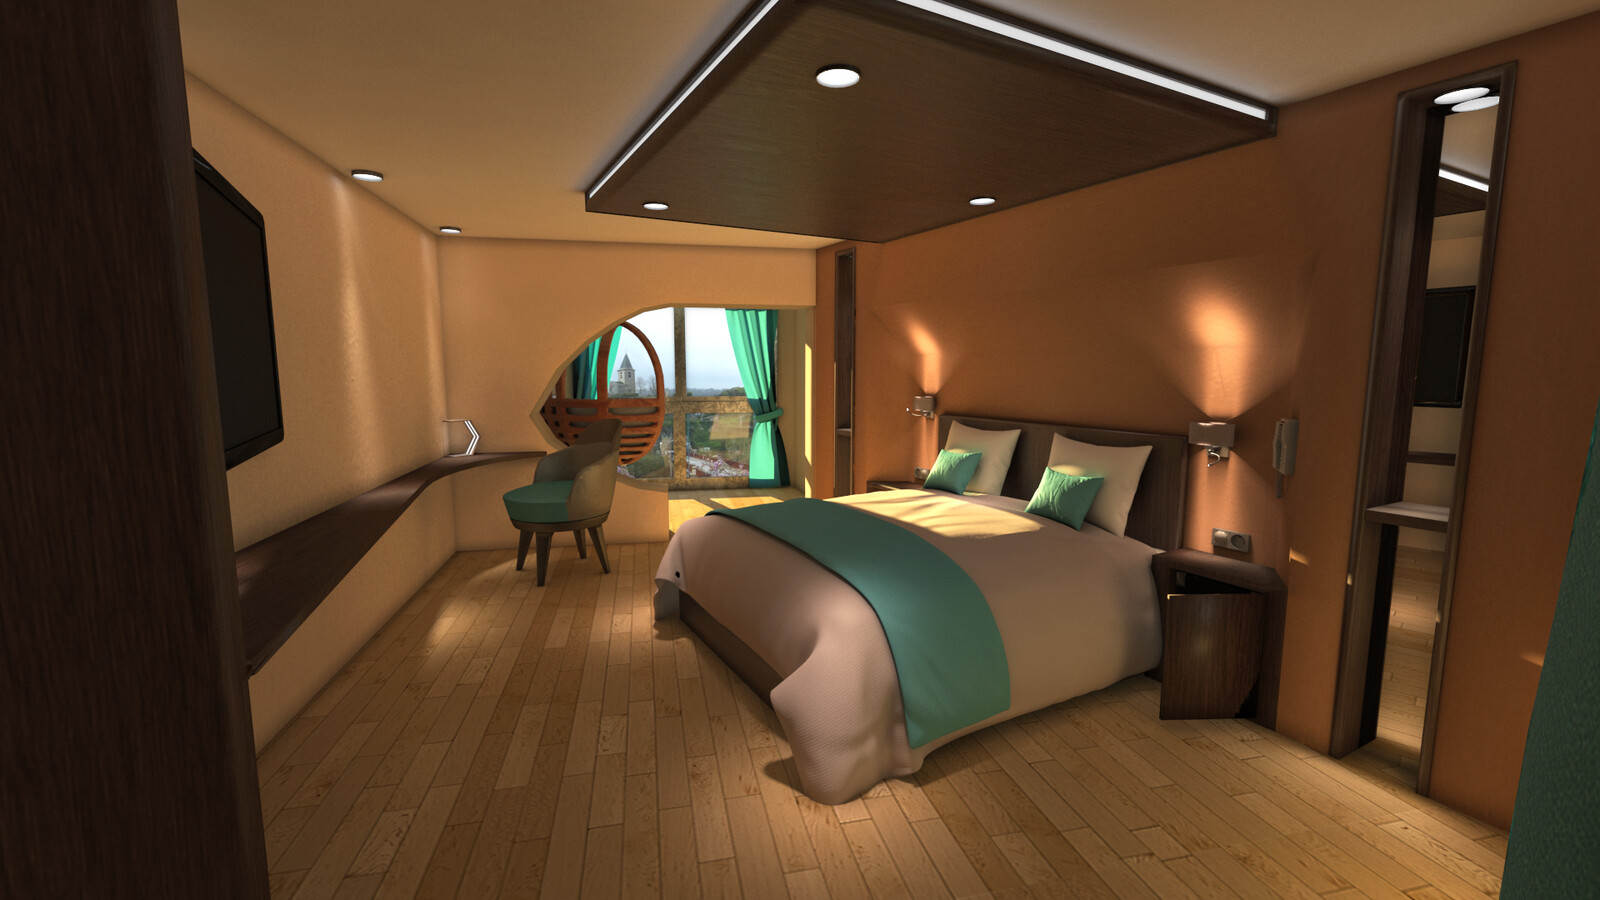 Proposition for the new bedroom